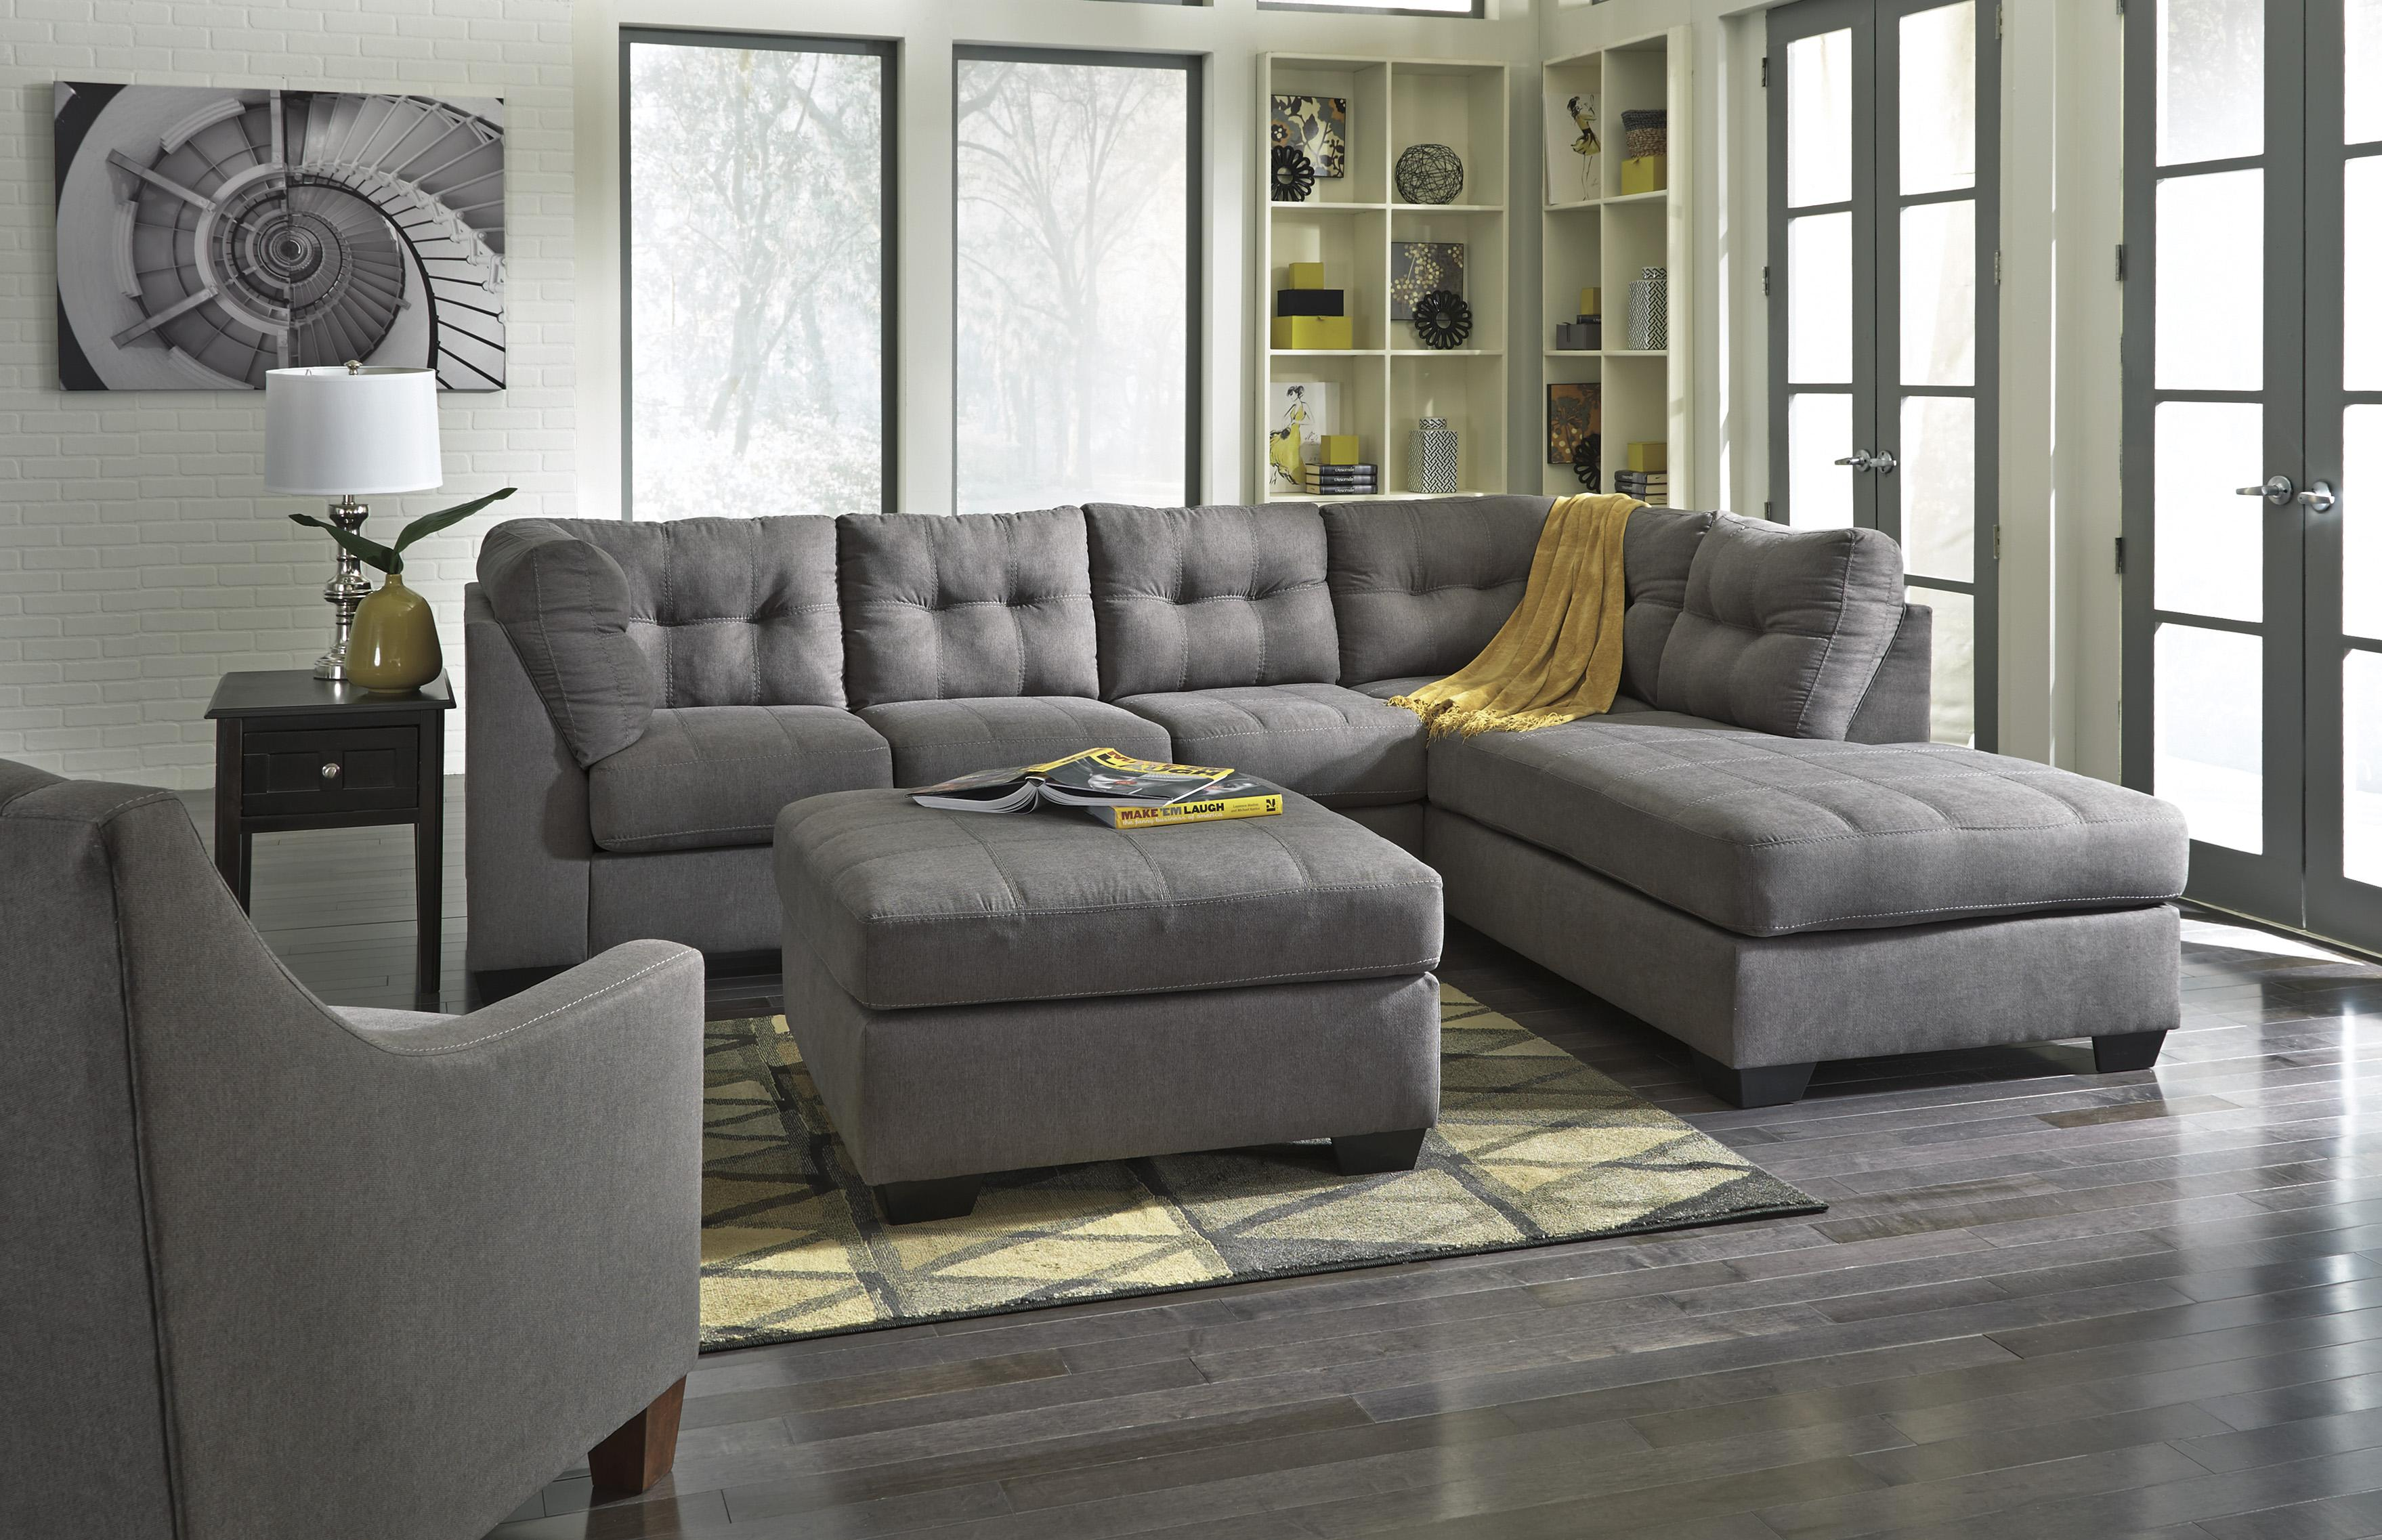 Logan - Lifestyle Furniture